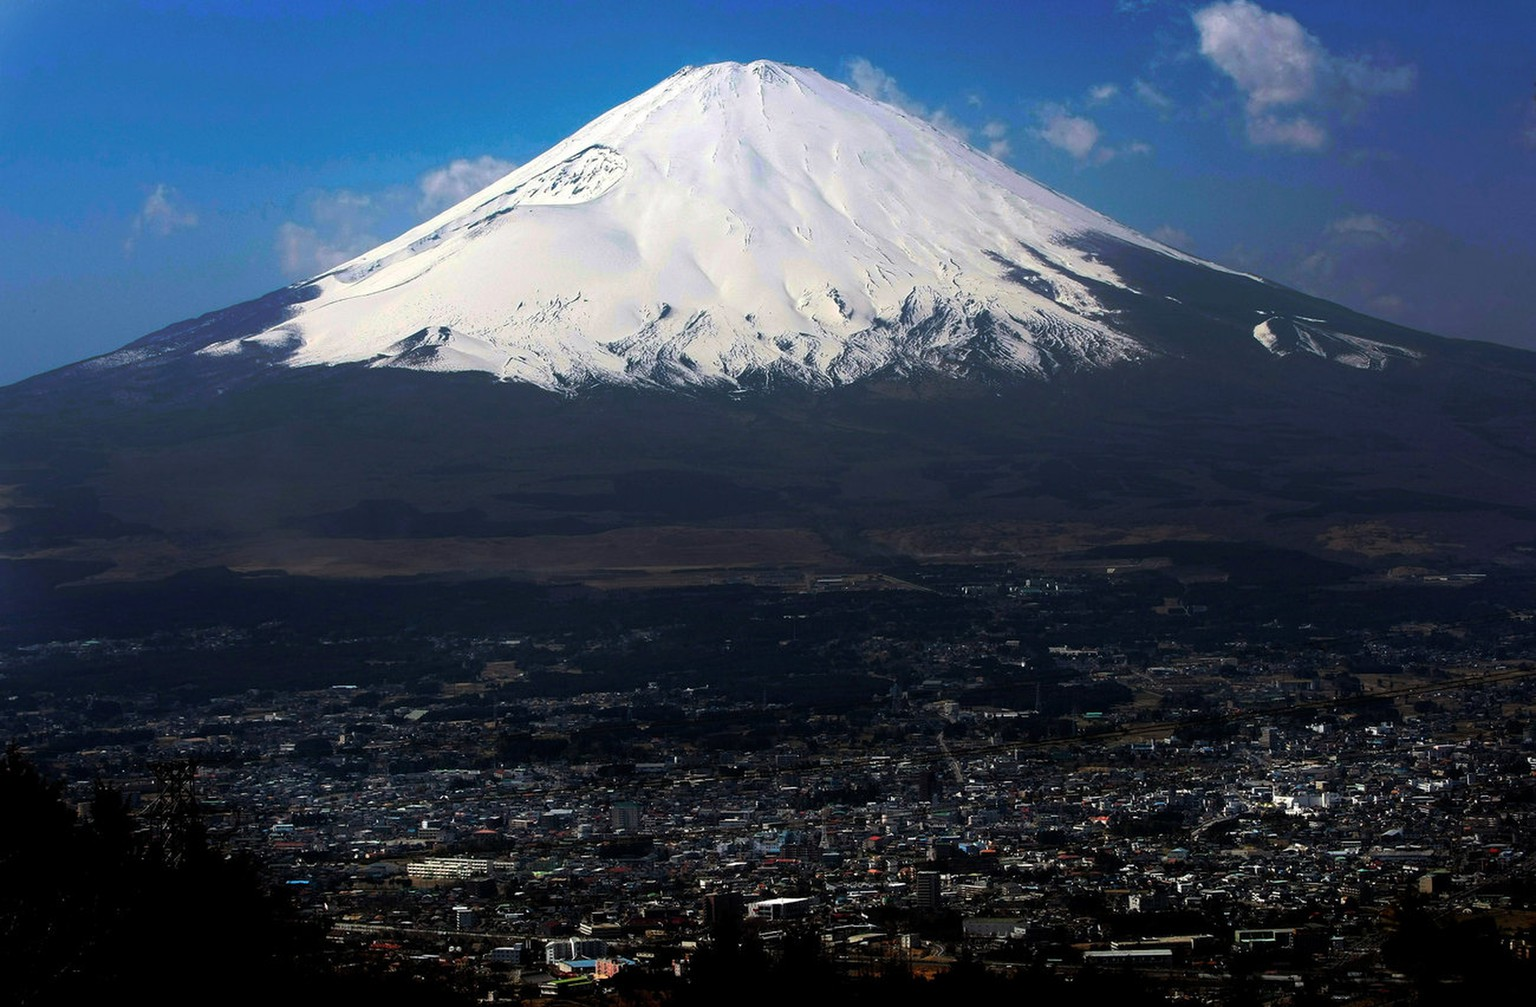 Snow-covered Mount Fuji, Japan's highest peak at 3,776-meter (12,385 feet), is seen from an observation platform in Gotemba, west of Tokyo, Japan, Tuesday, March 17, 2009.(AP Photo/Itsuo Inouye)